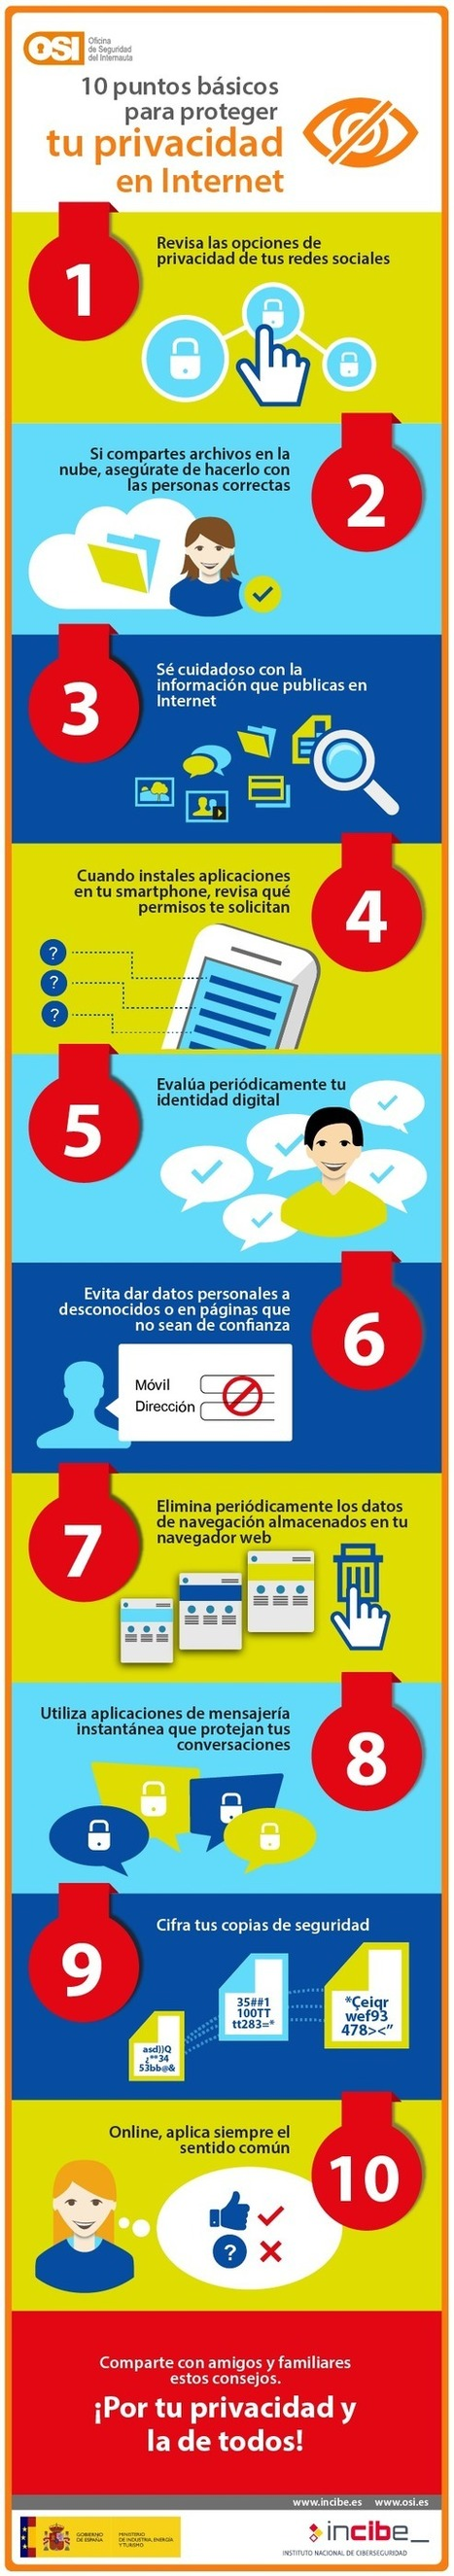 10 puntos básicos para proteger tu seguridad en Internet #infografia #infographic | Wallet Digital - Social Media, Business & Technology | Scoop.it